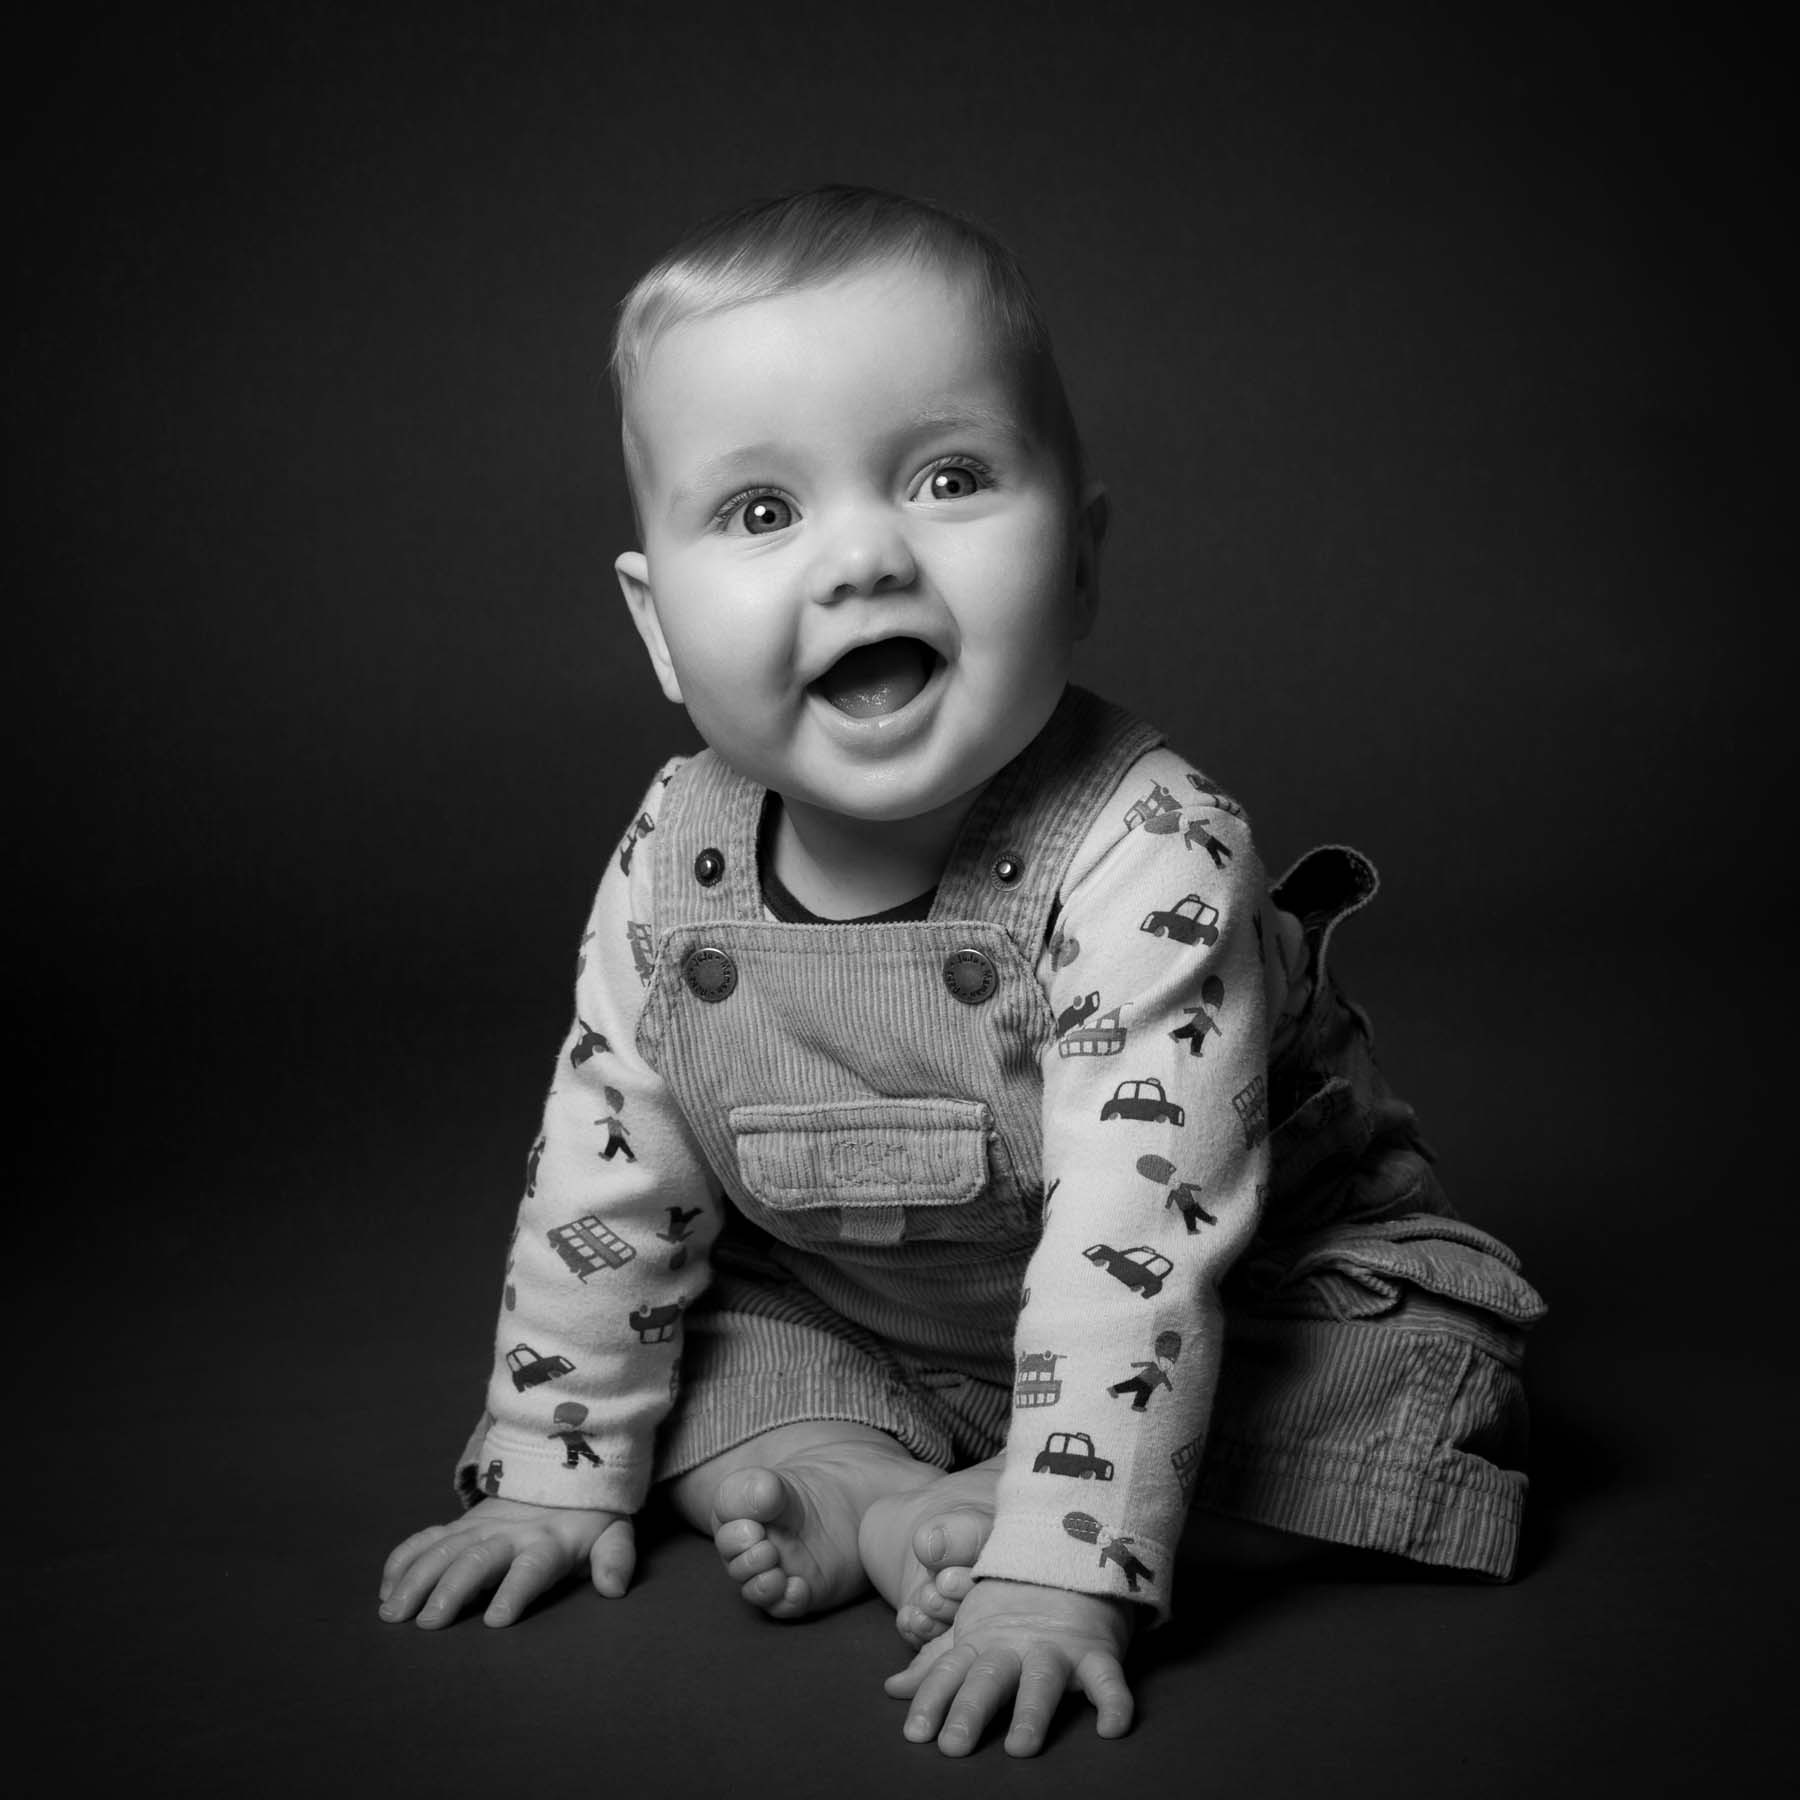 Newborn Baby Photographer in Sussex & Surrey, East Grinstead & Crawley (2)